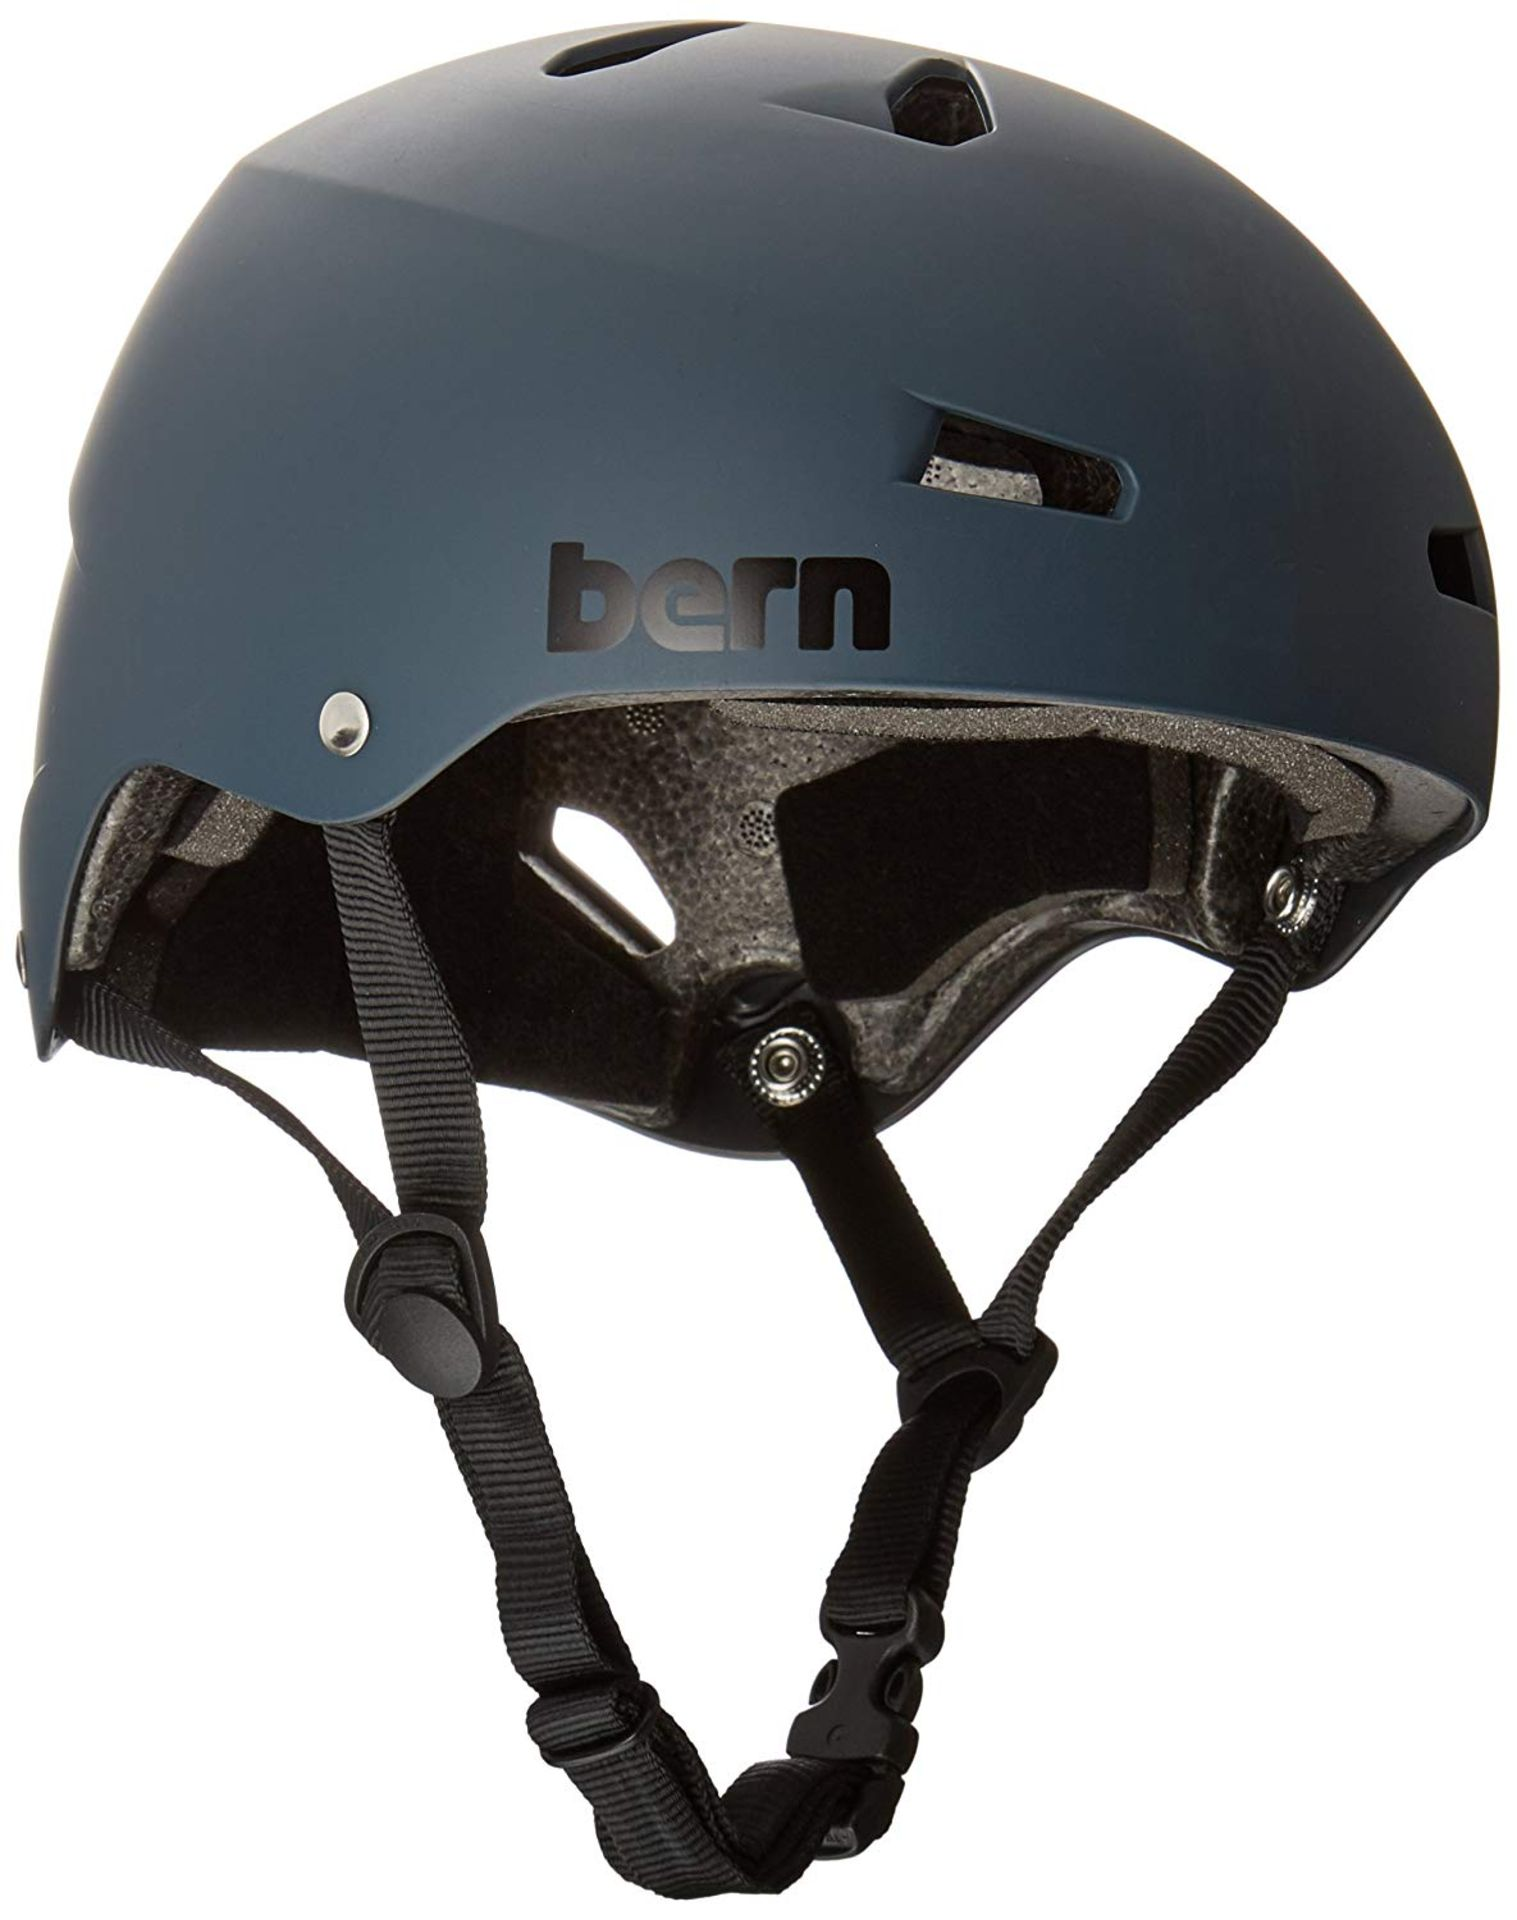 Lot 15 - Bern Unisex's Macon EPS Cycling Helmet, Mutted Teal, Medium